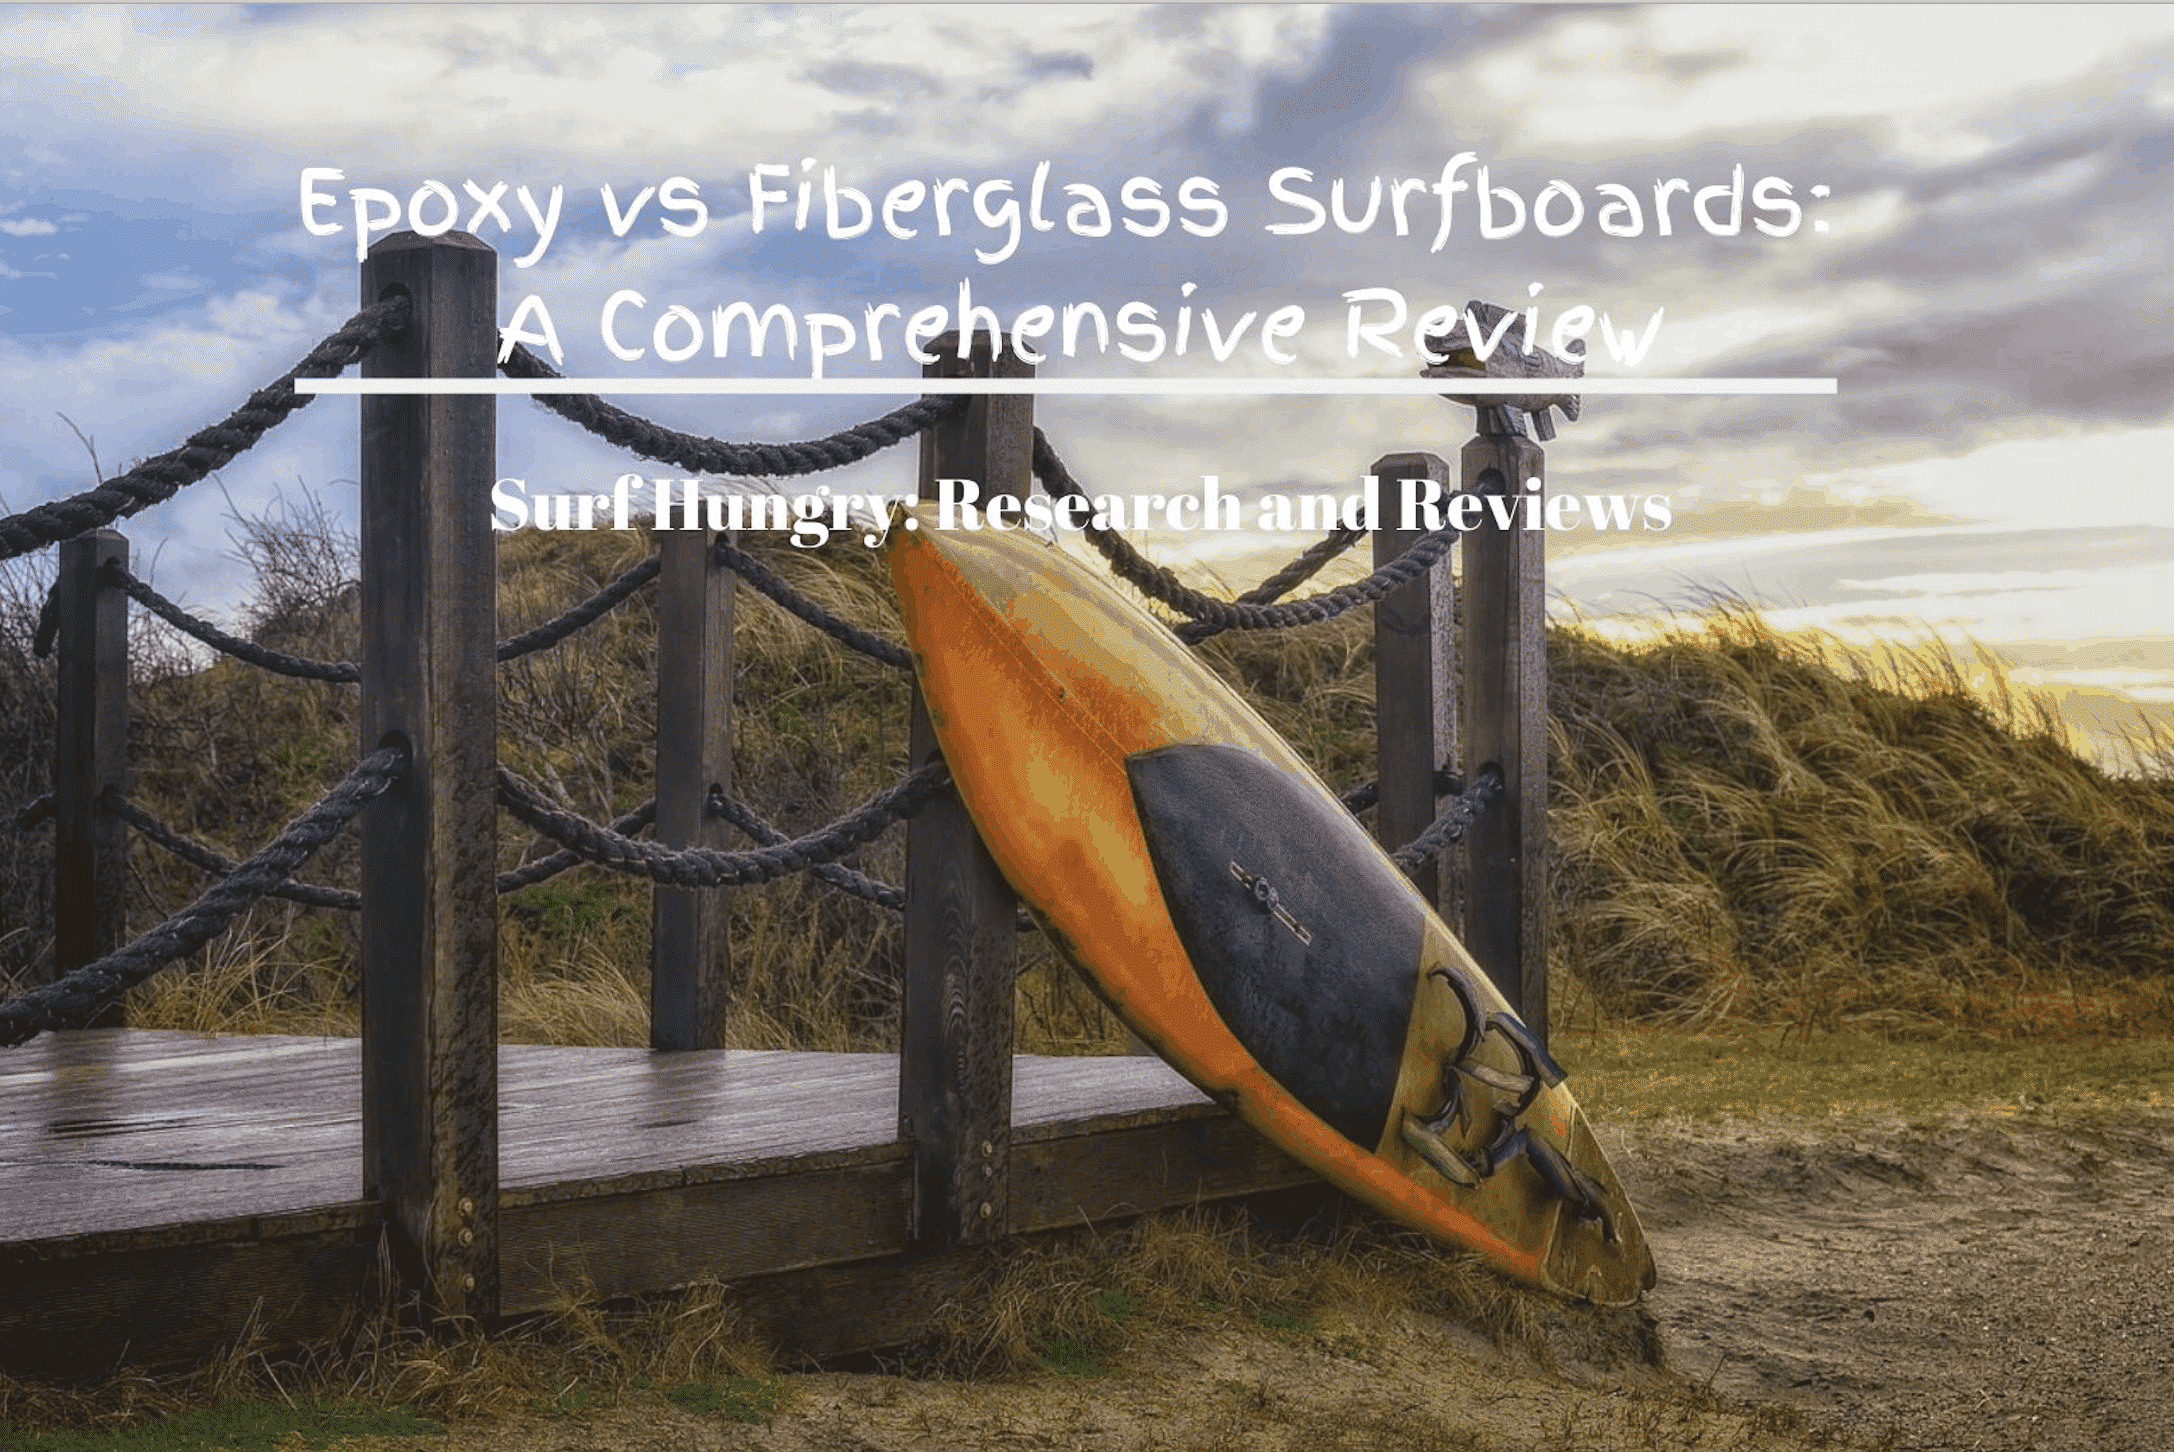 epoxy vs fiberglass surfboards